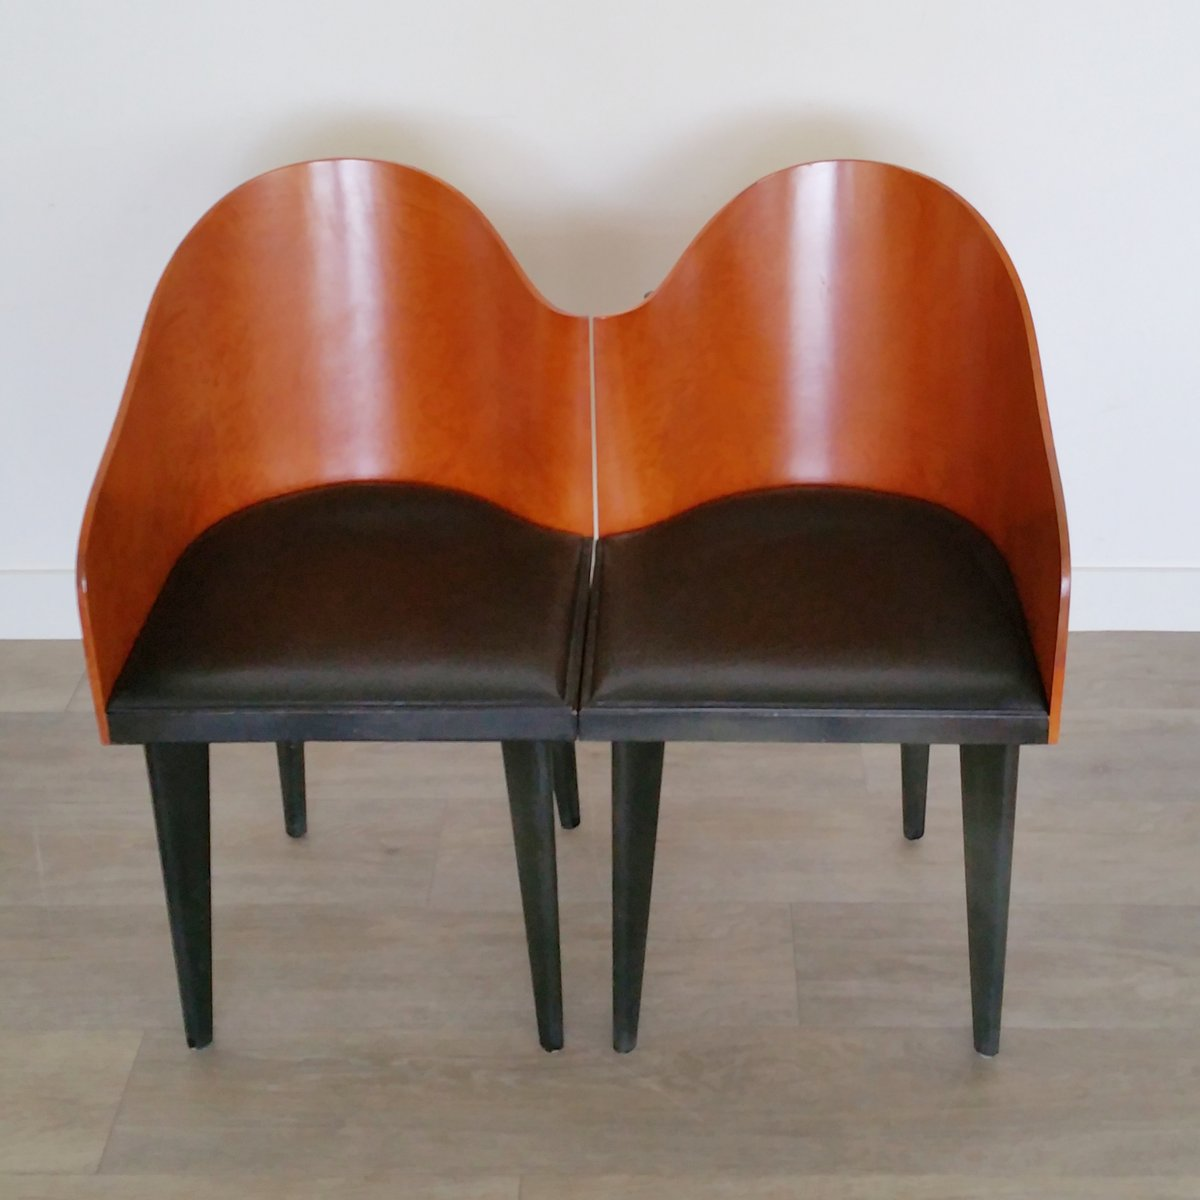 Toscana Chairs By Piero Sartogo And Nathalie Grenon For